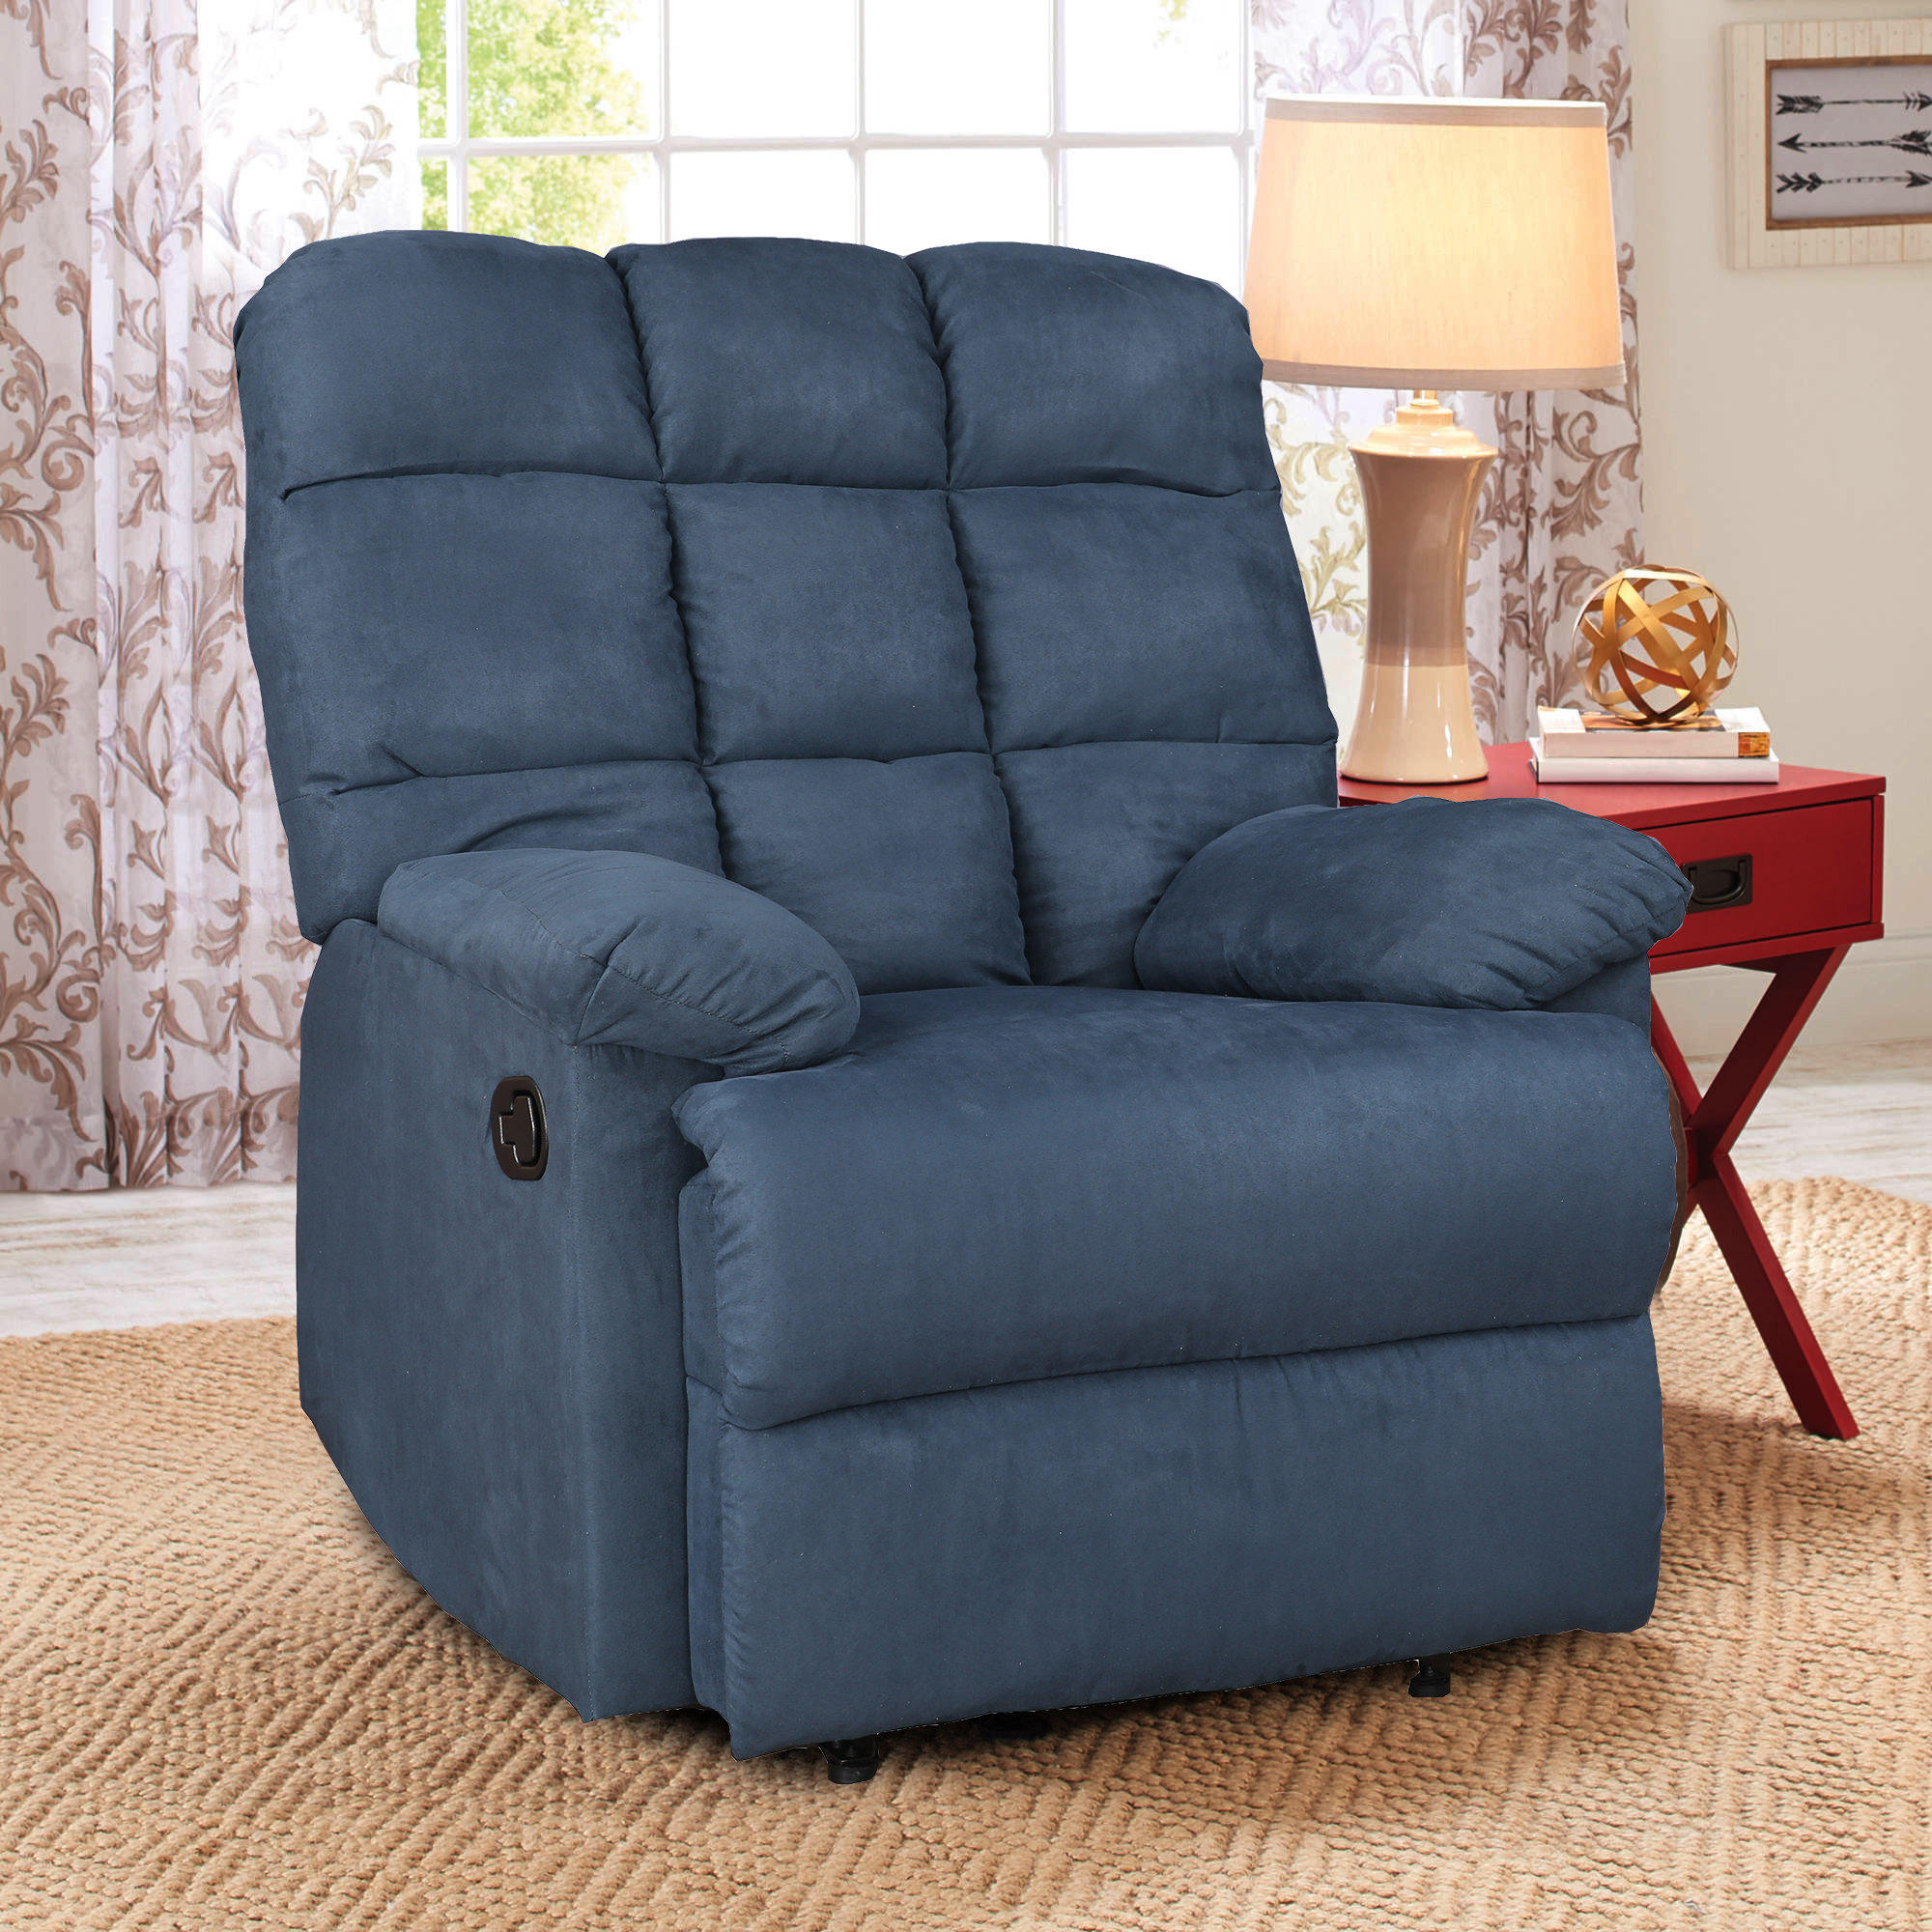 Graham Fabric Single Seater Recliner in Blue Colour by HomeTown